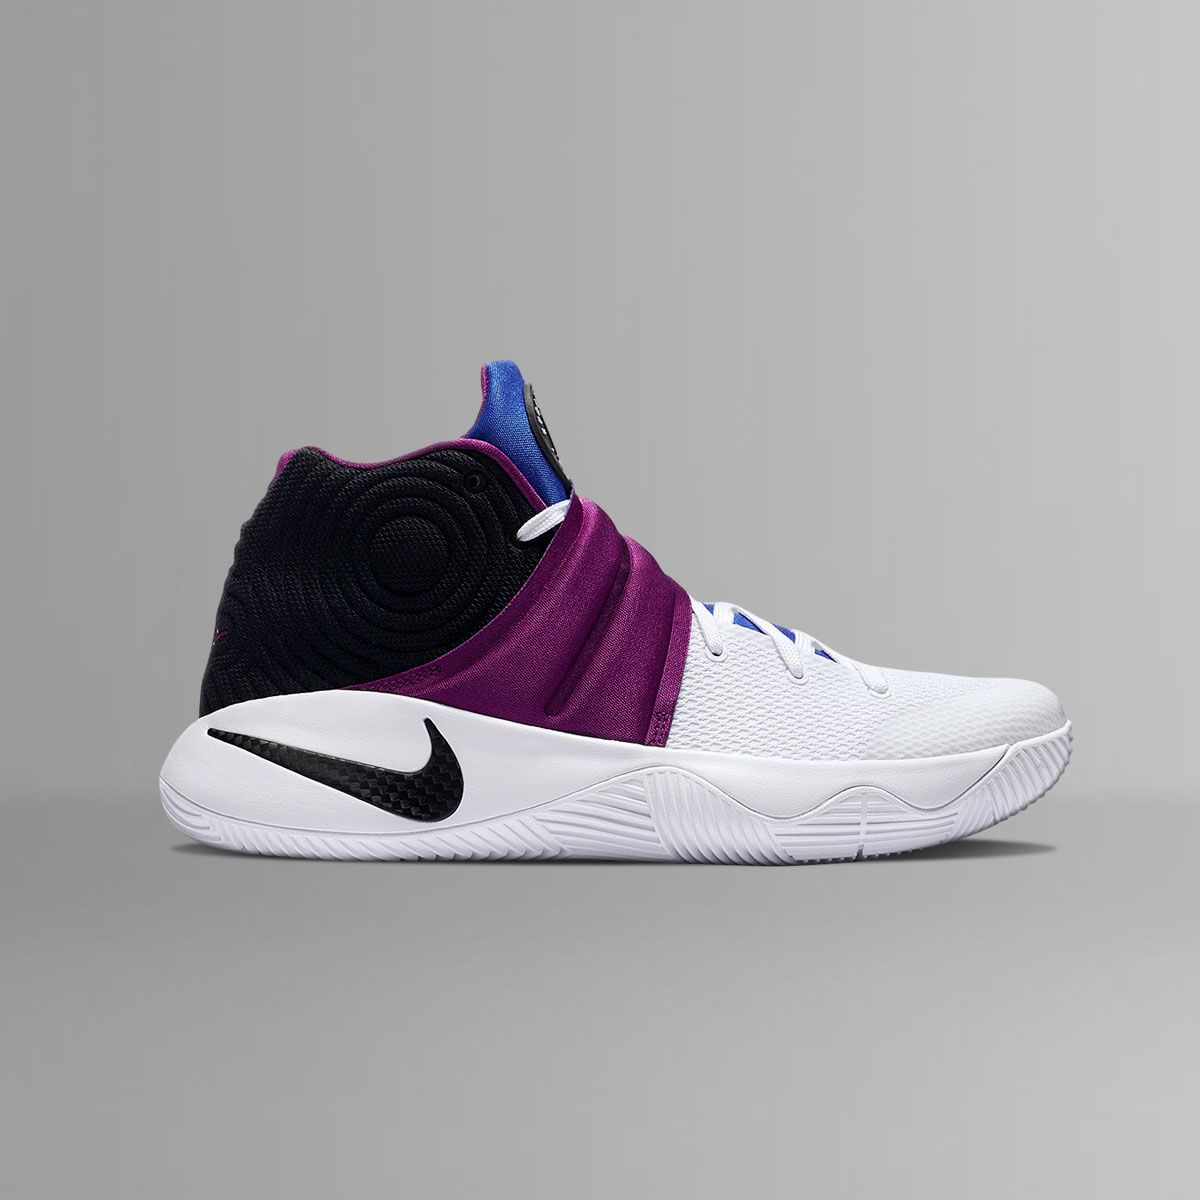 Drawing inspiration from the original Air Flight Huarache, the Nike Kyrie 2  'Kyrache'